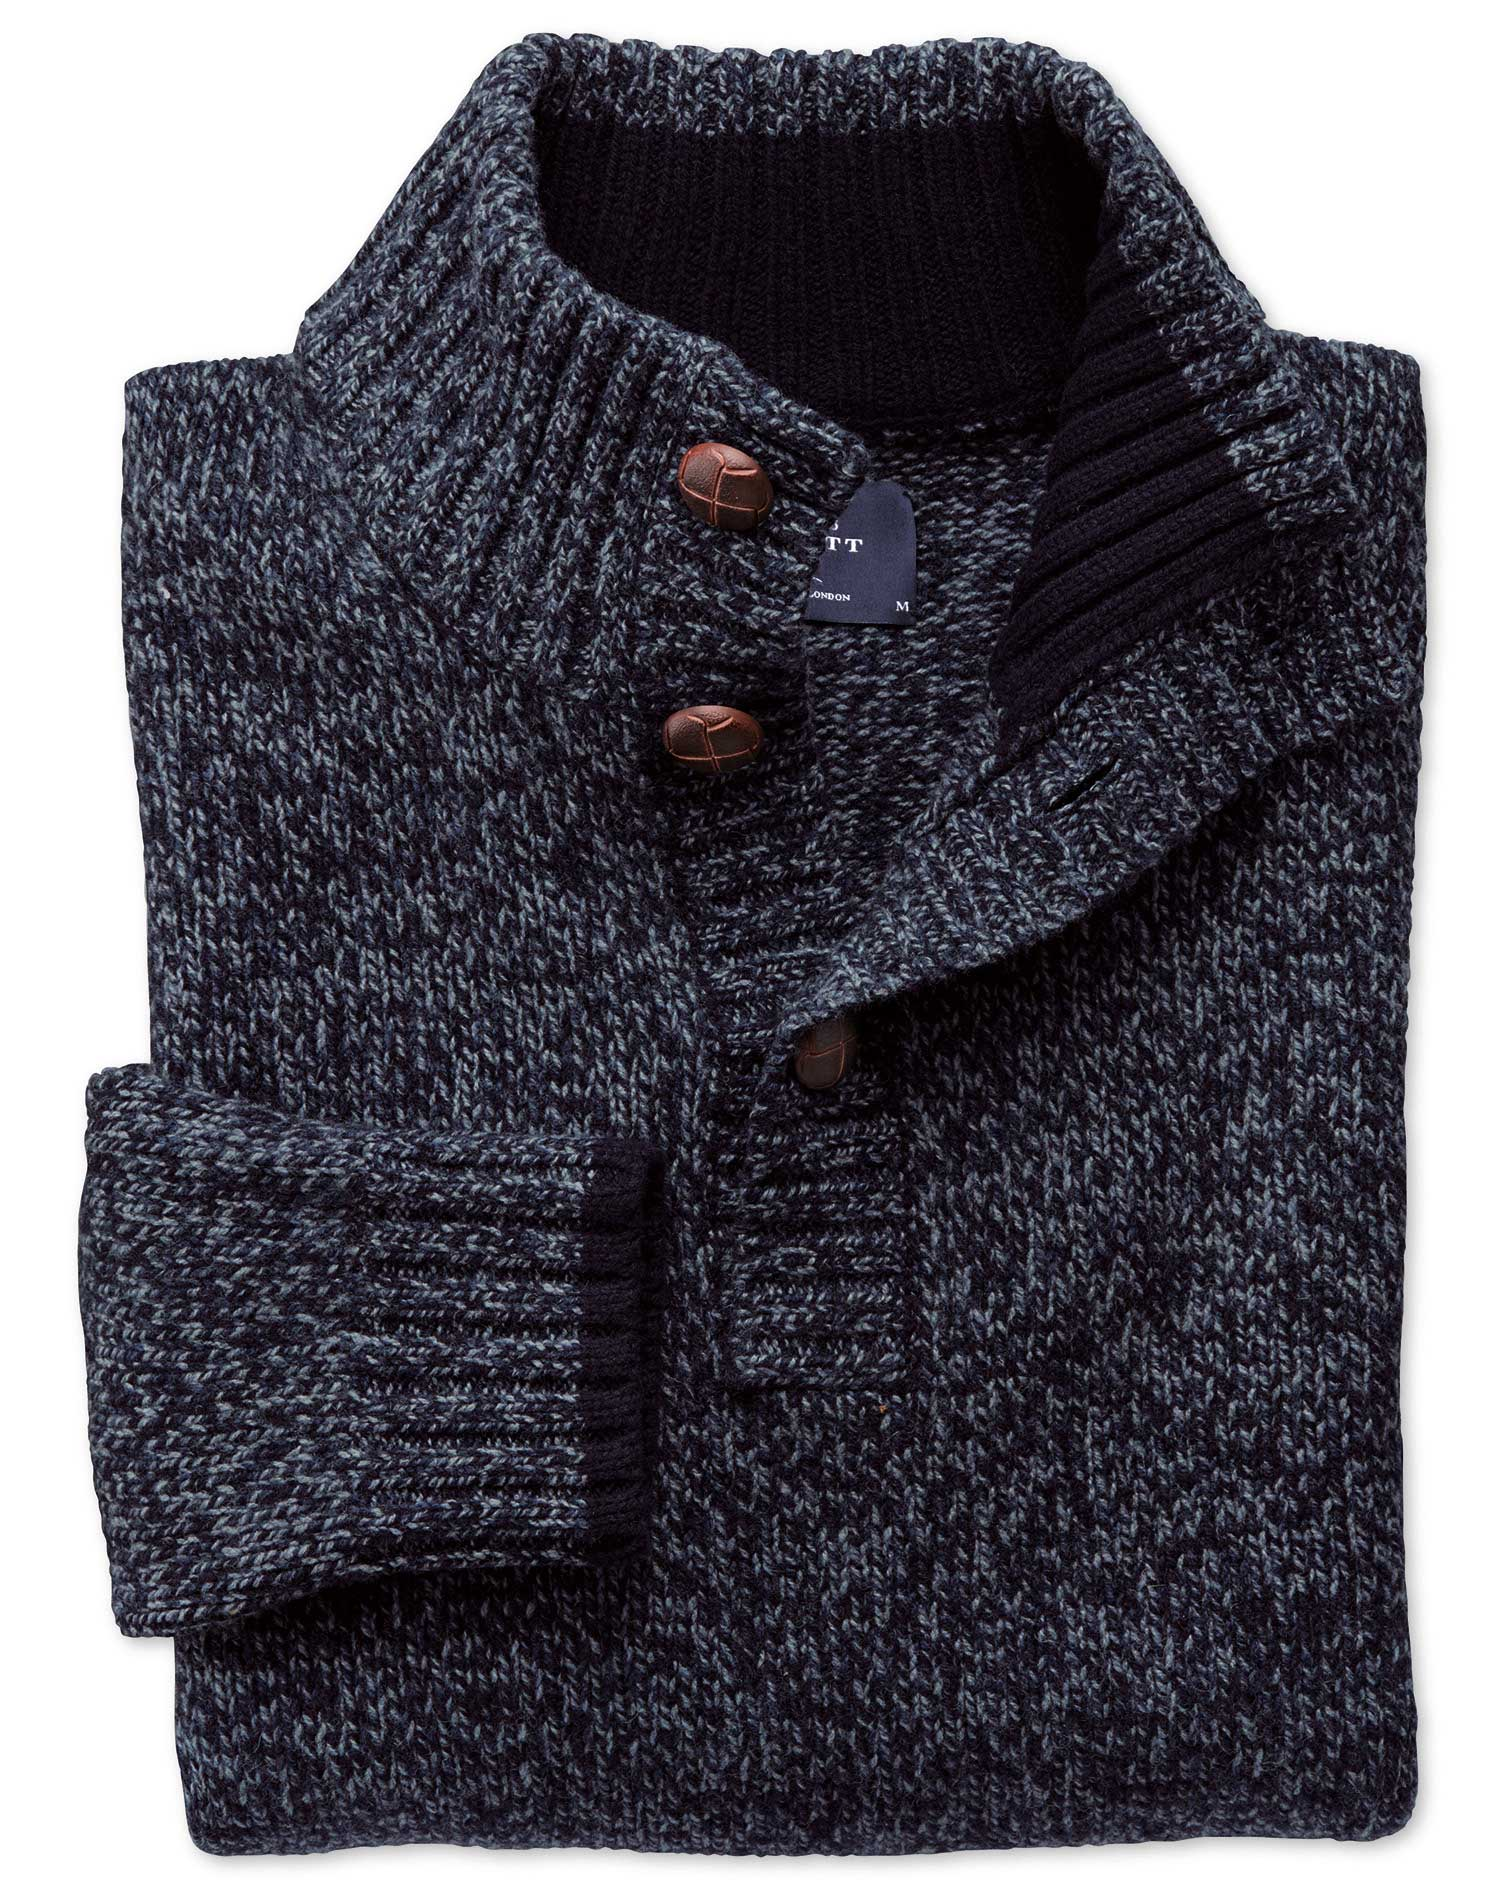 Navy Mouline Button Neck Wool Jumper Size Large by Charles Tyrwhitt